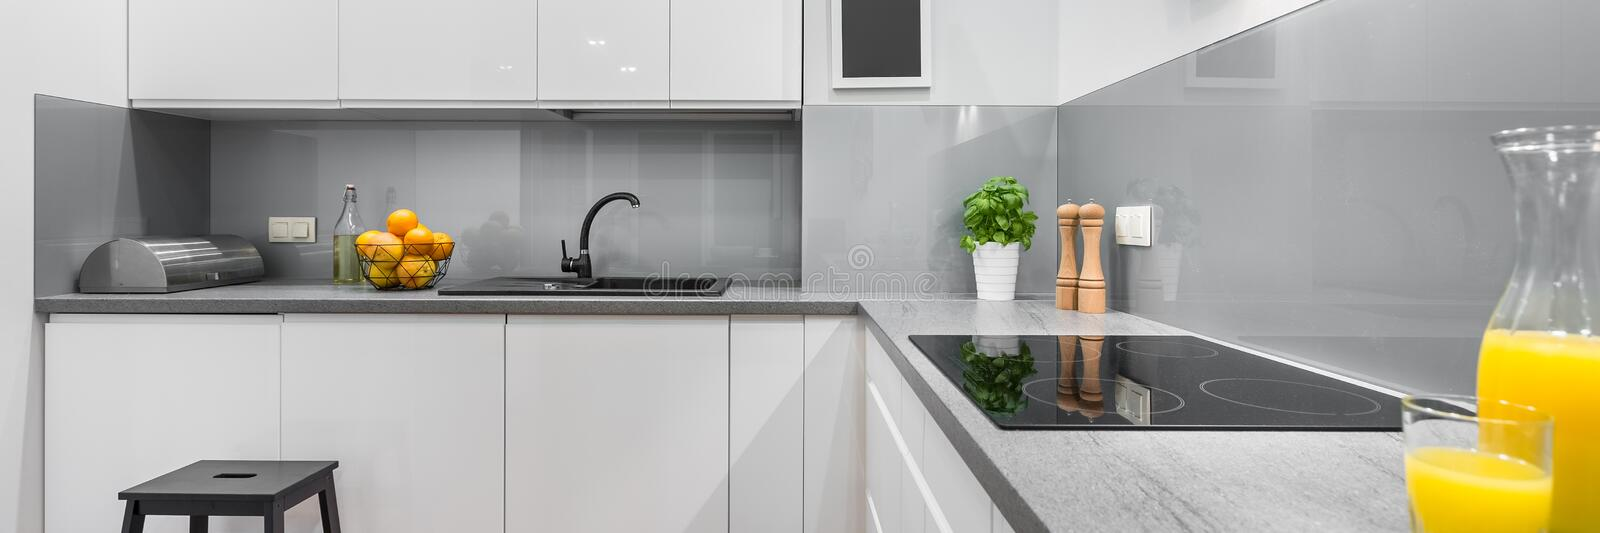 Spacious and modern kitchen royalty free stock photography